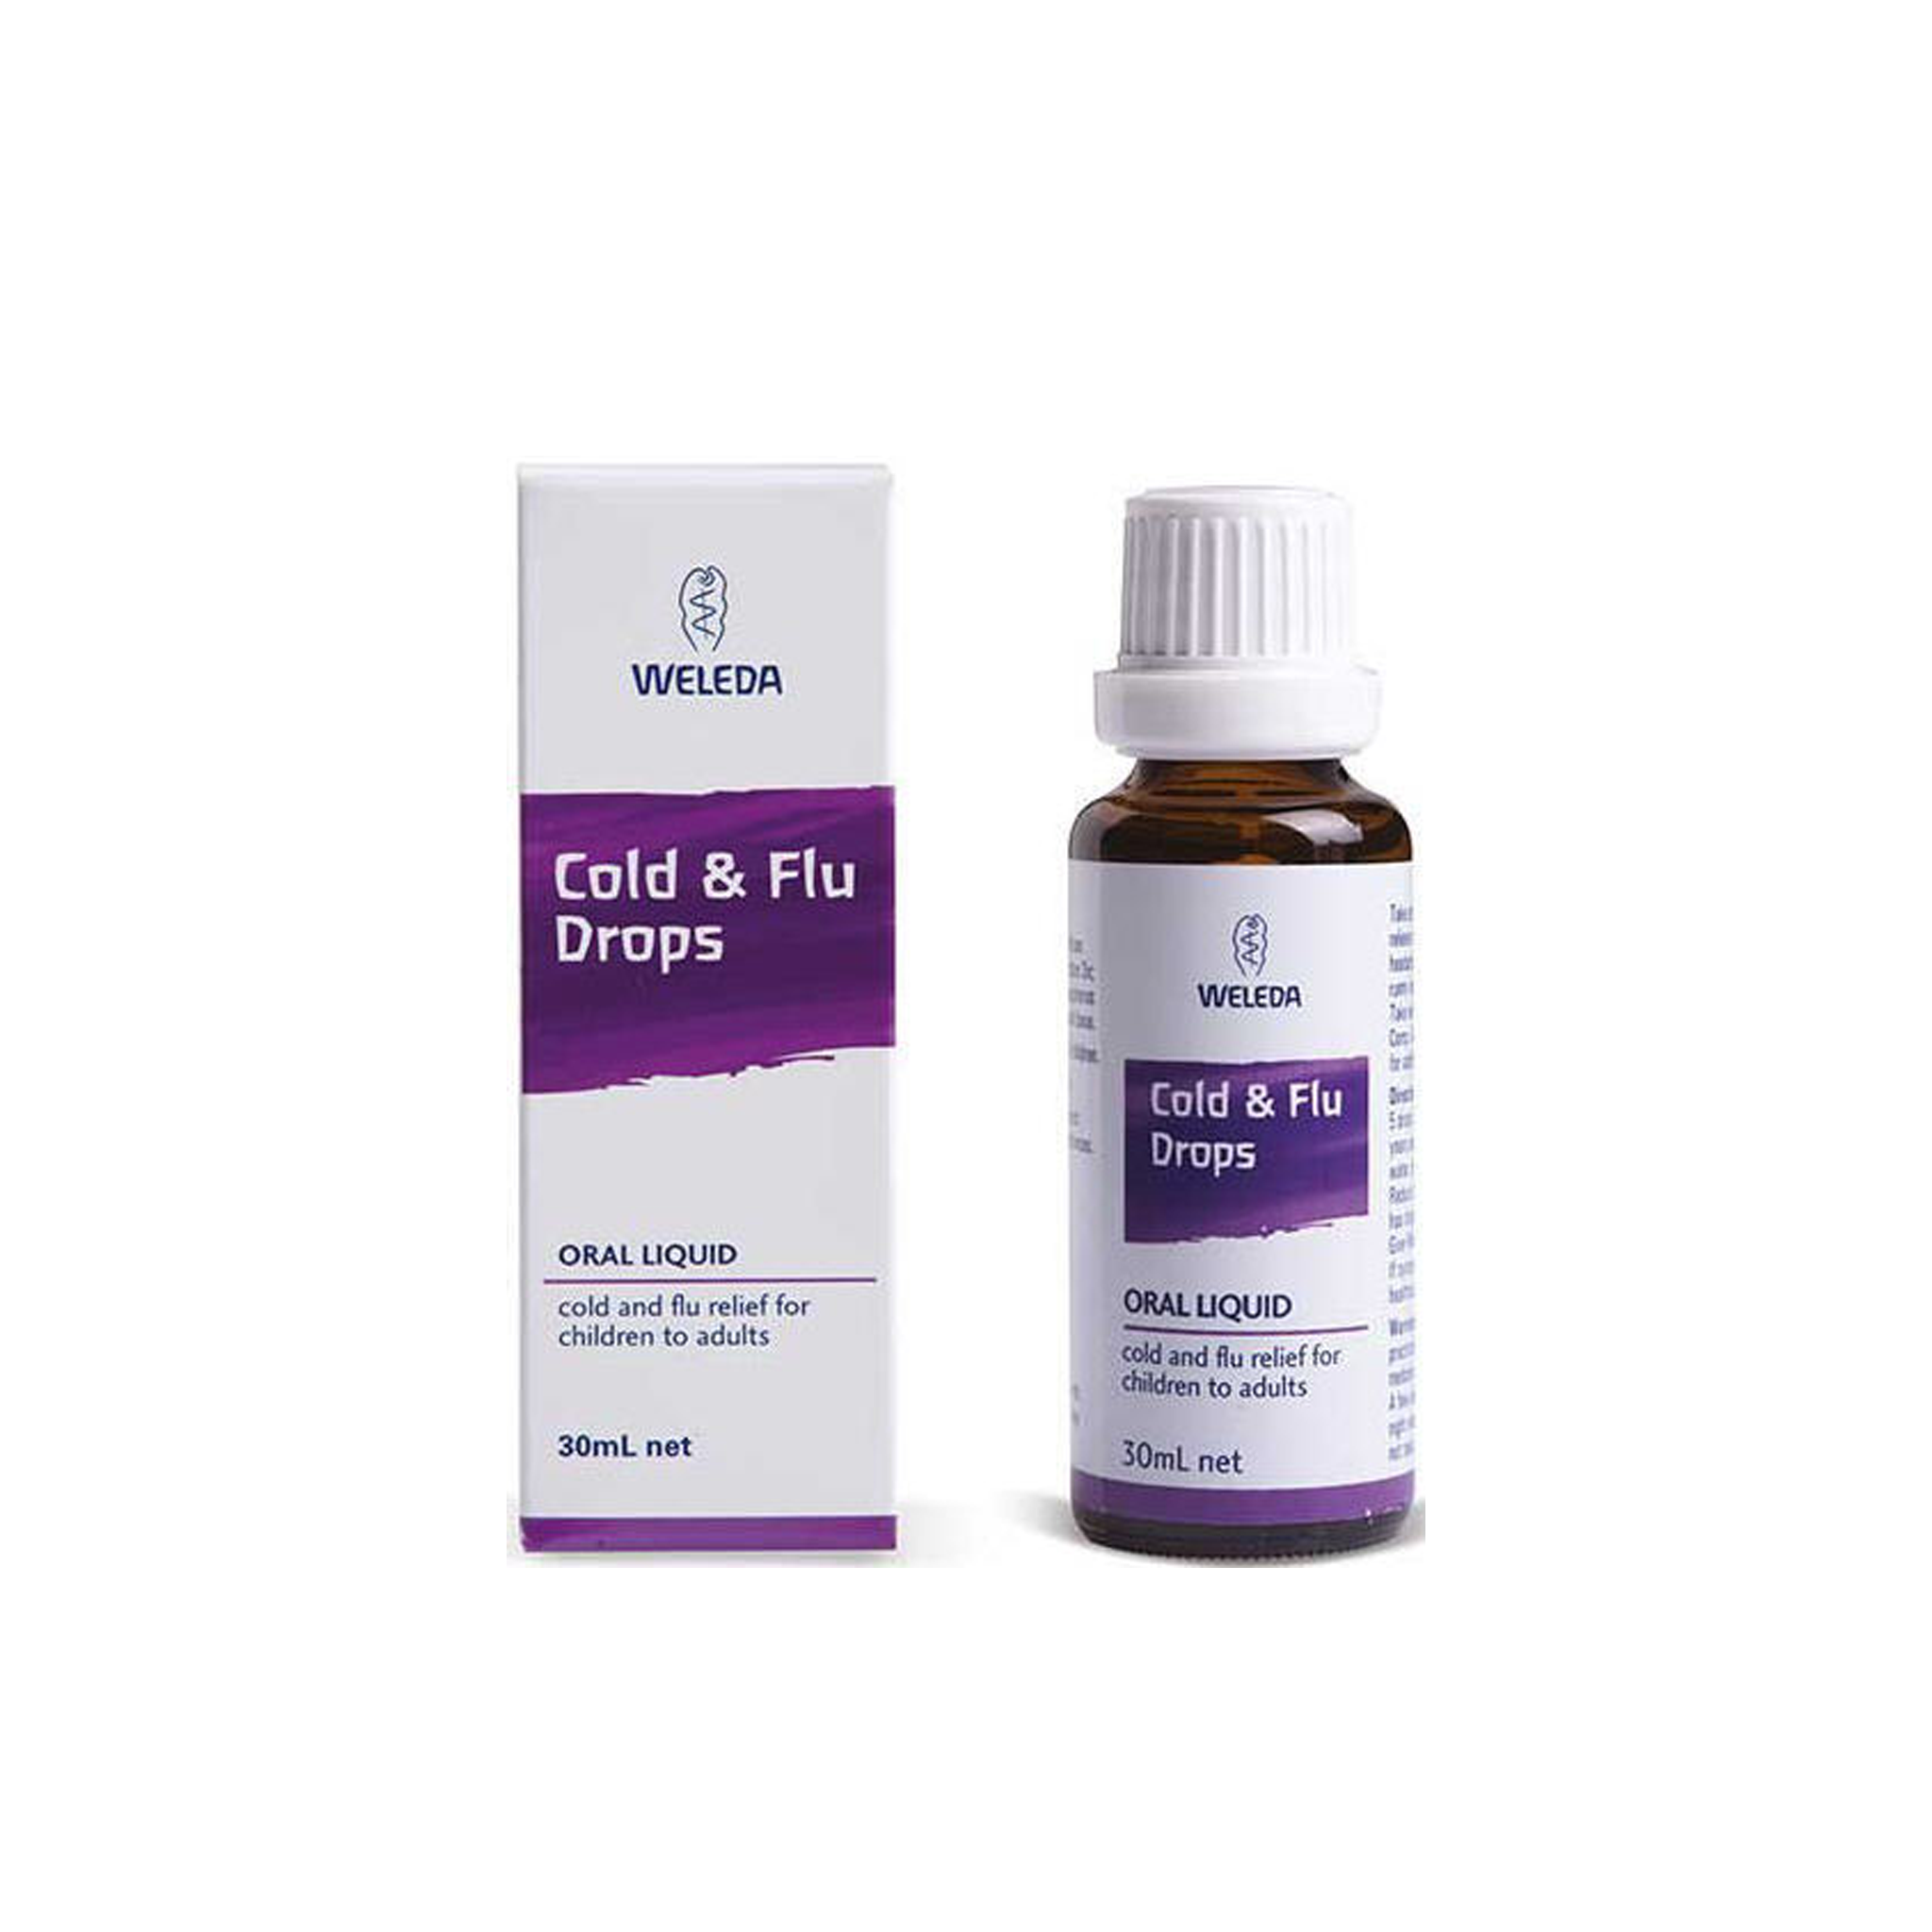 Weleda Cold & Flu Drops